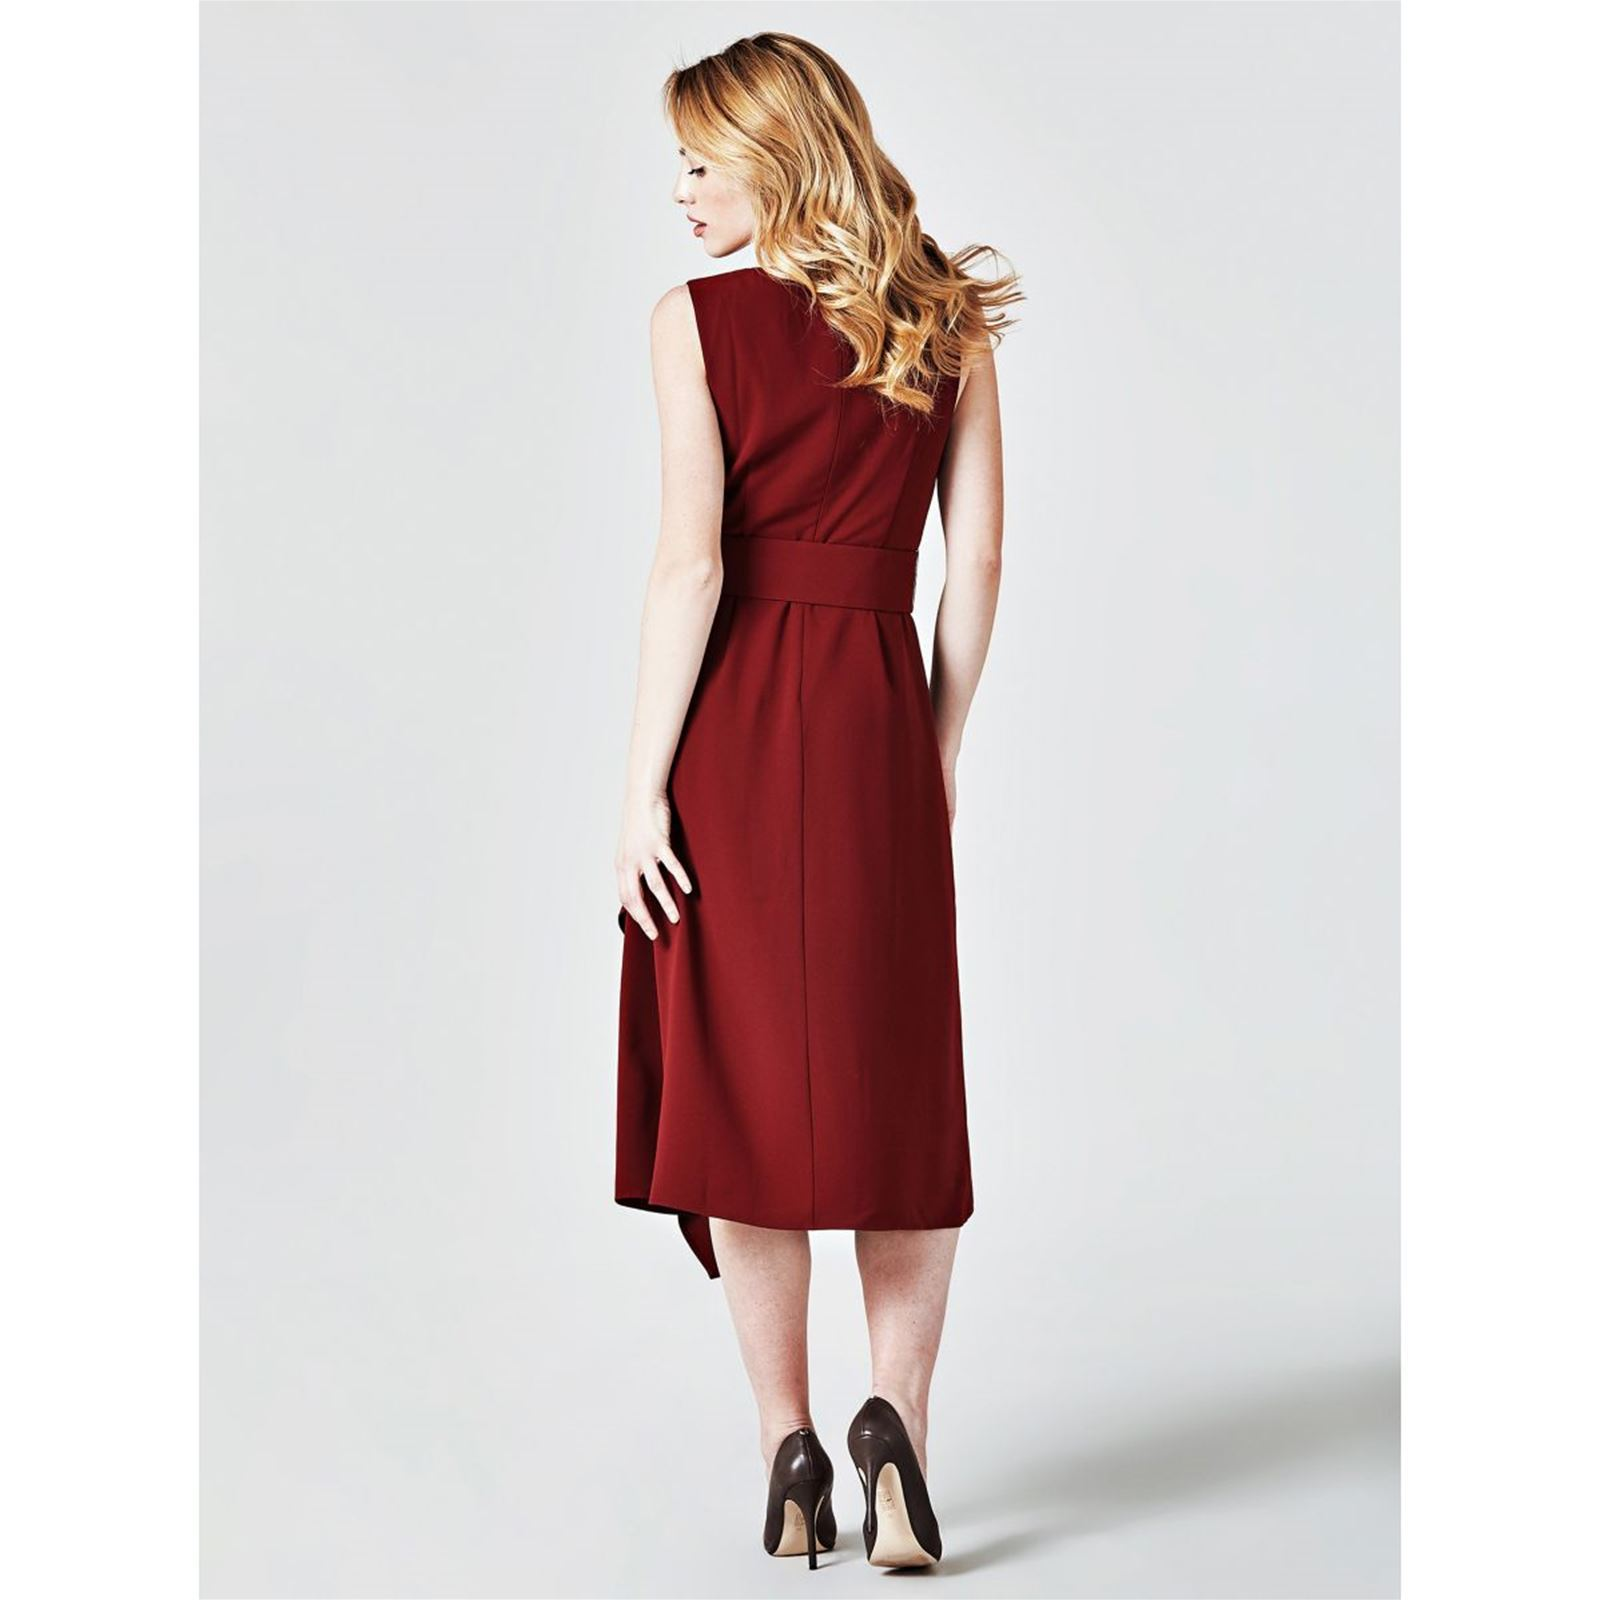 Marciano Robe Angeles Los Rouge Ceinture TUqTw8xR